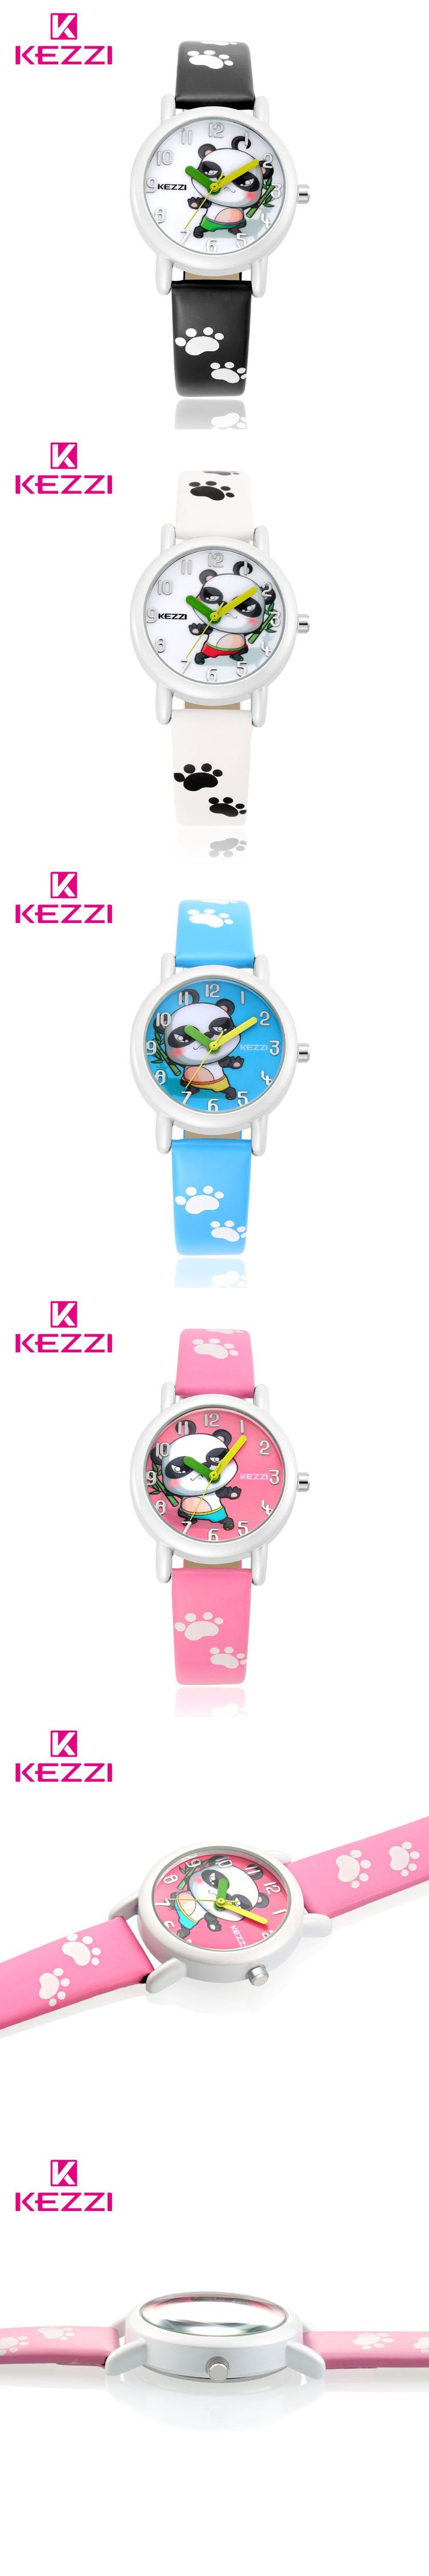 New Arrive In June KEZZI Brand Cartoon Wrist Watches For Kids CHINA Best Friends Chinese National Treasure Lovely Panda Watch